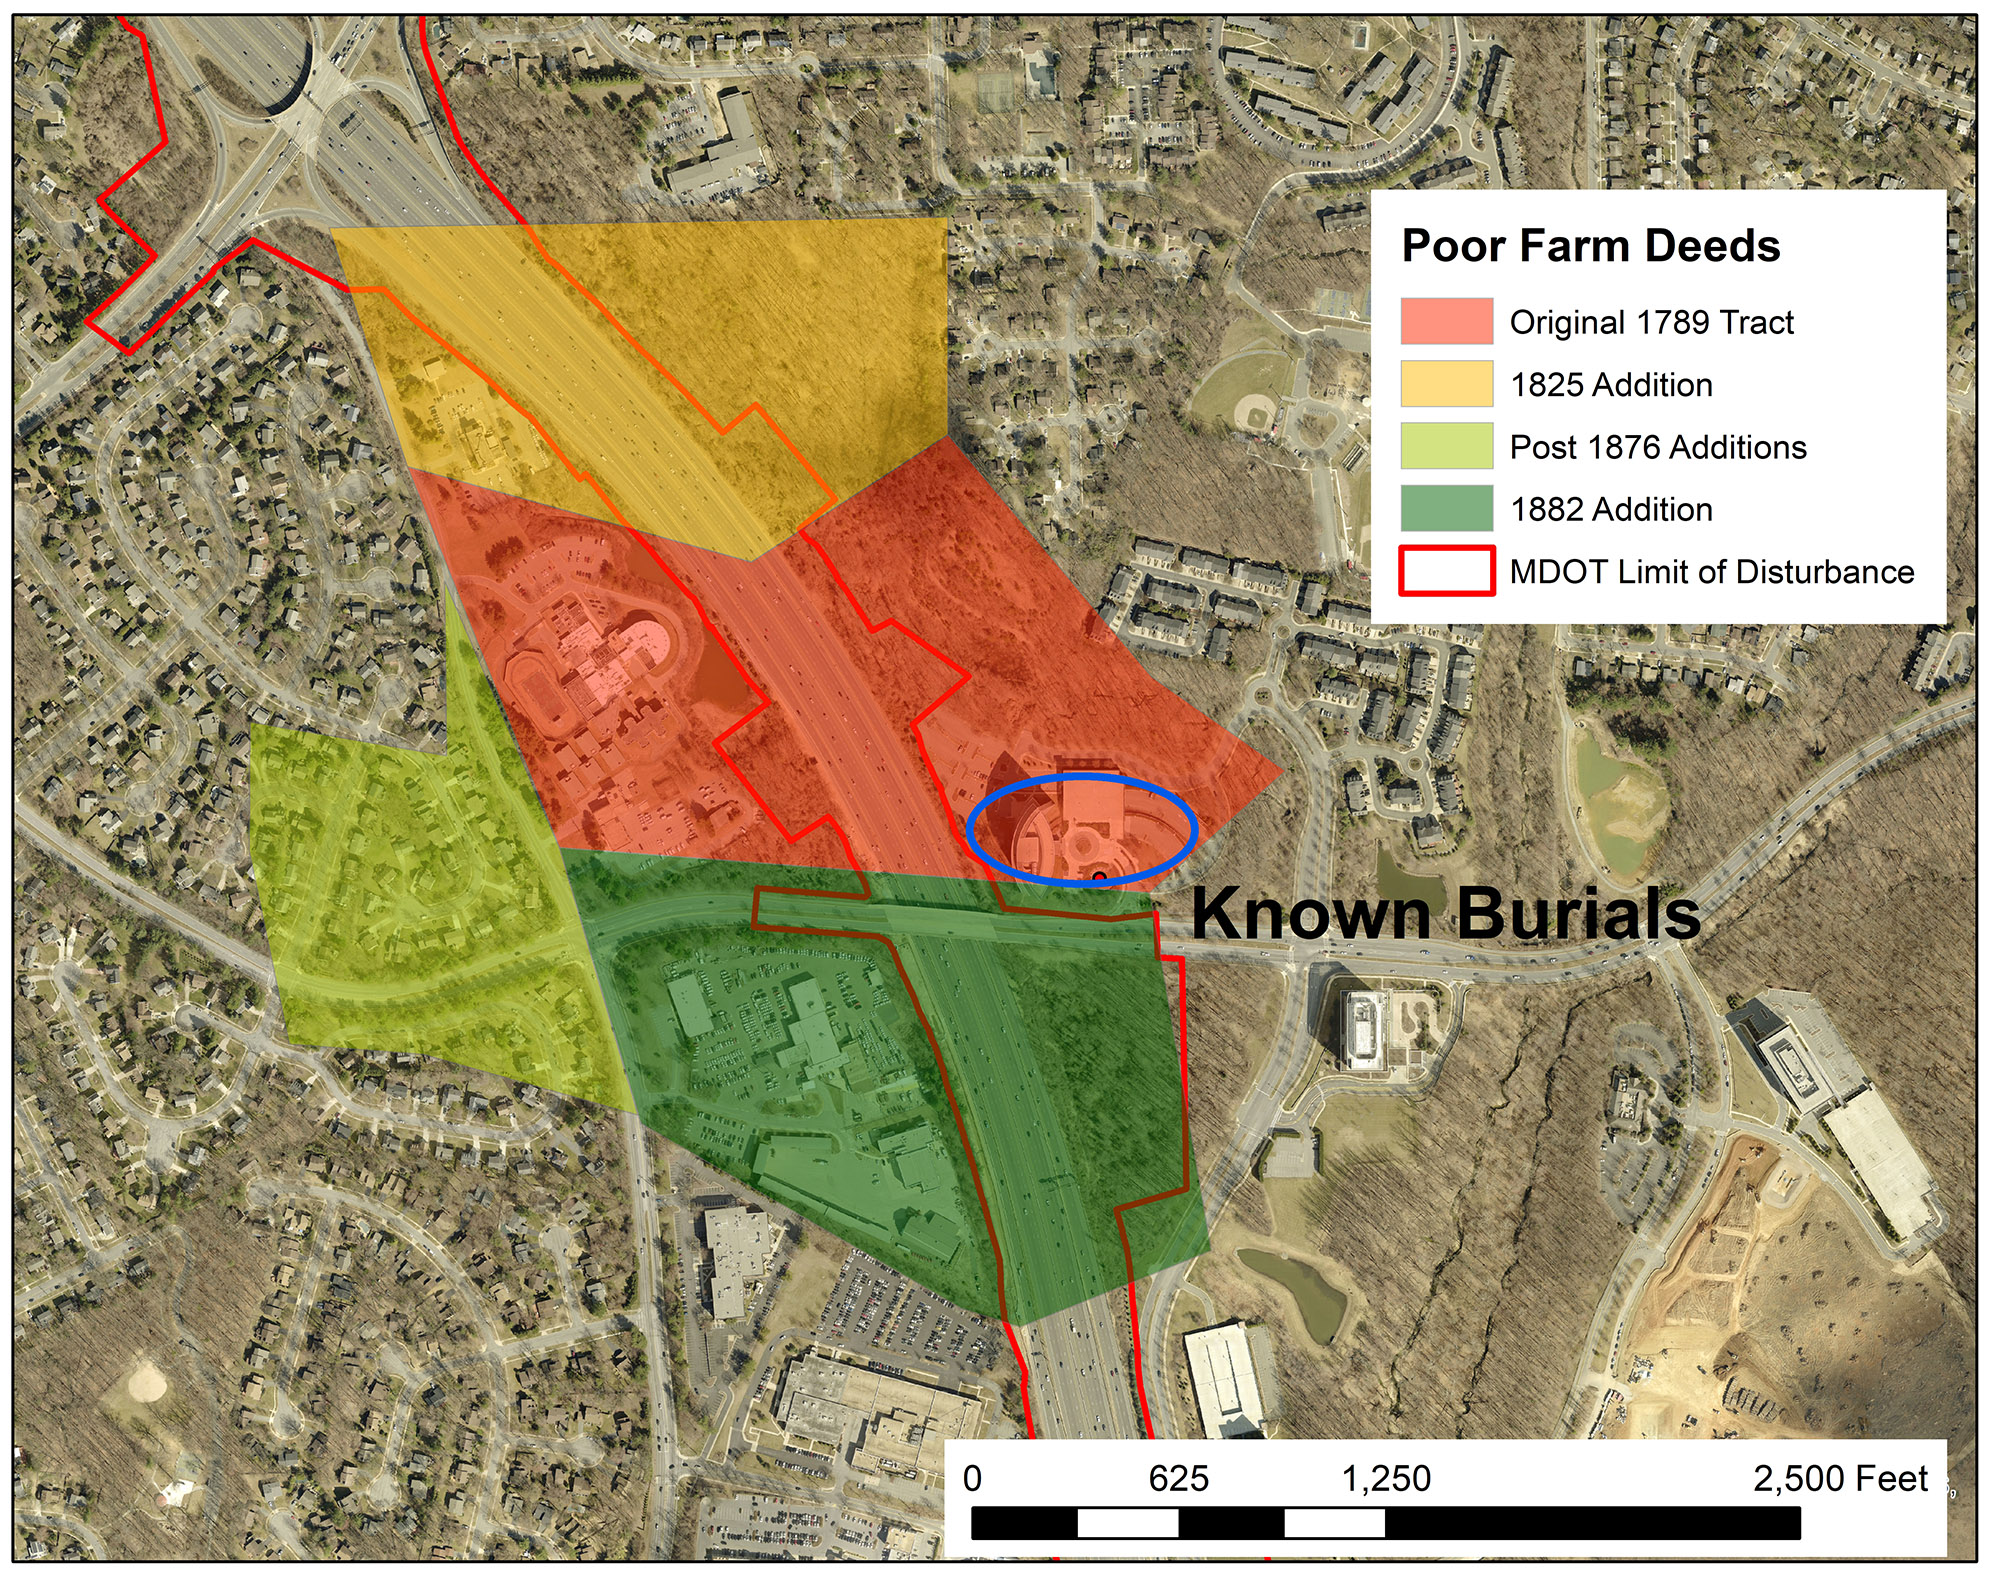 Proposed maximum limits of disturbance for expansion of I270 (red outline) overlain on a 2019 aerial photograph with parcels purchased for the Poor Farm over the course of a century (color shaded areas) and the area where burials were found in 1987 (blue oval). The red region in the middle was the original tract purchased in 1789. The yellow tract north of the original tract was bought in 1825, the light green parcel to the west after 1876, and the dark green parcel south of the original tract in 1882.